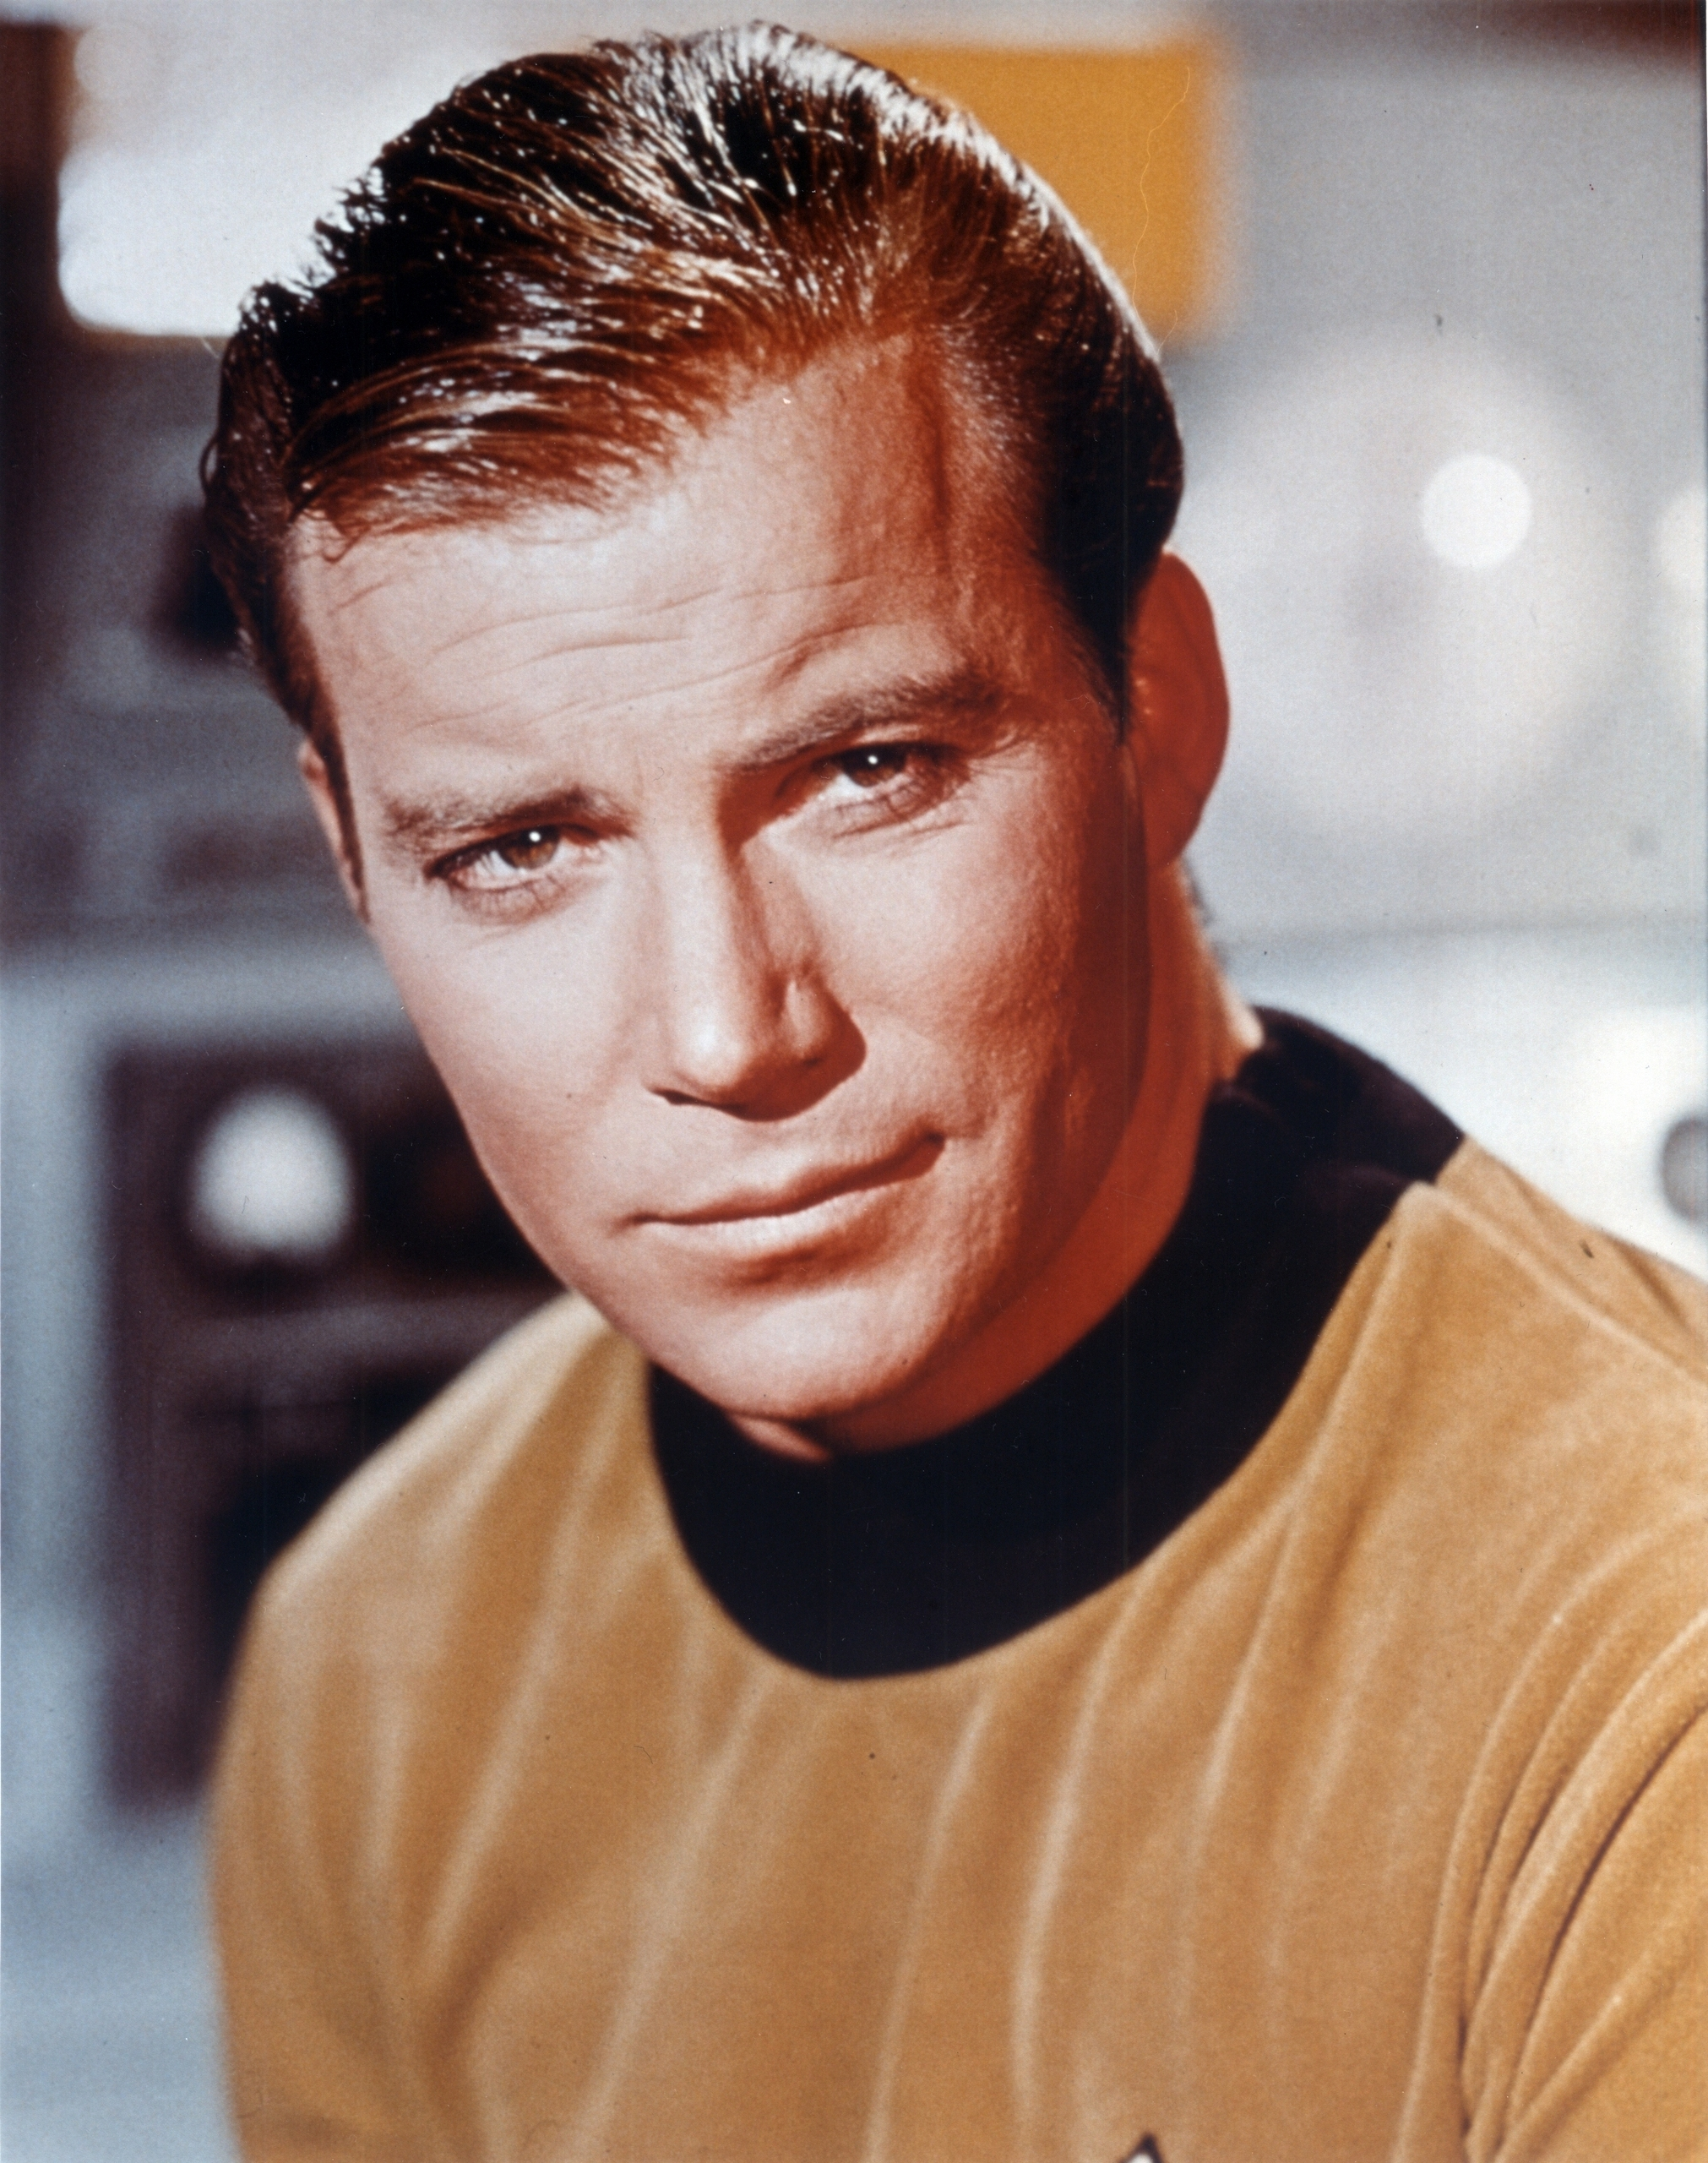 ST - Behind the Scenes - William Shatner Photo (11886186) - Fanpop ...